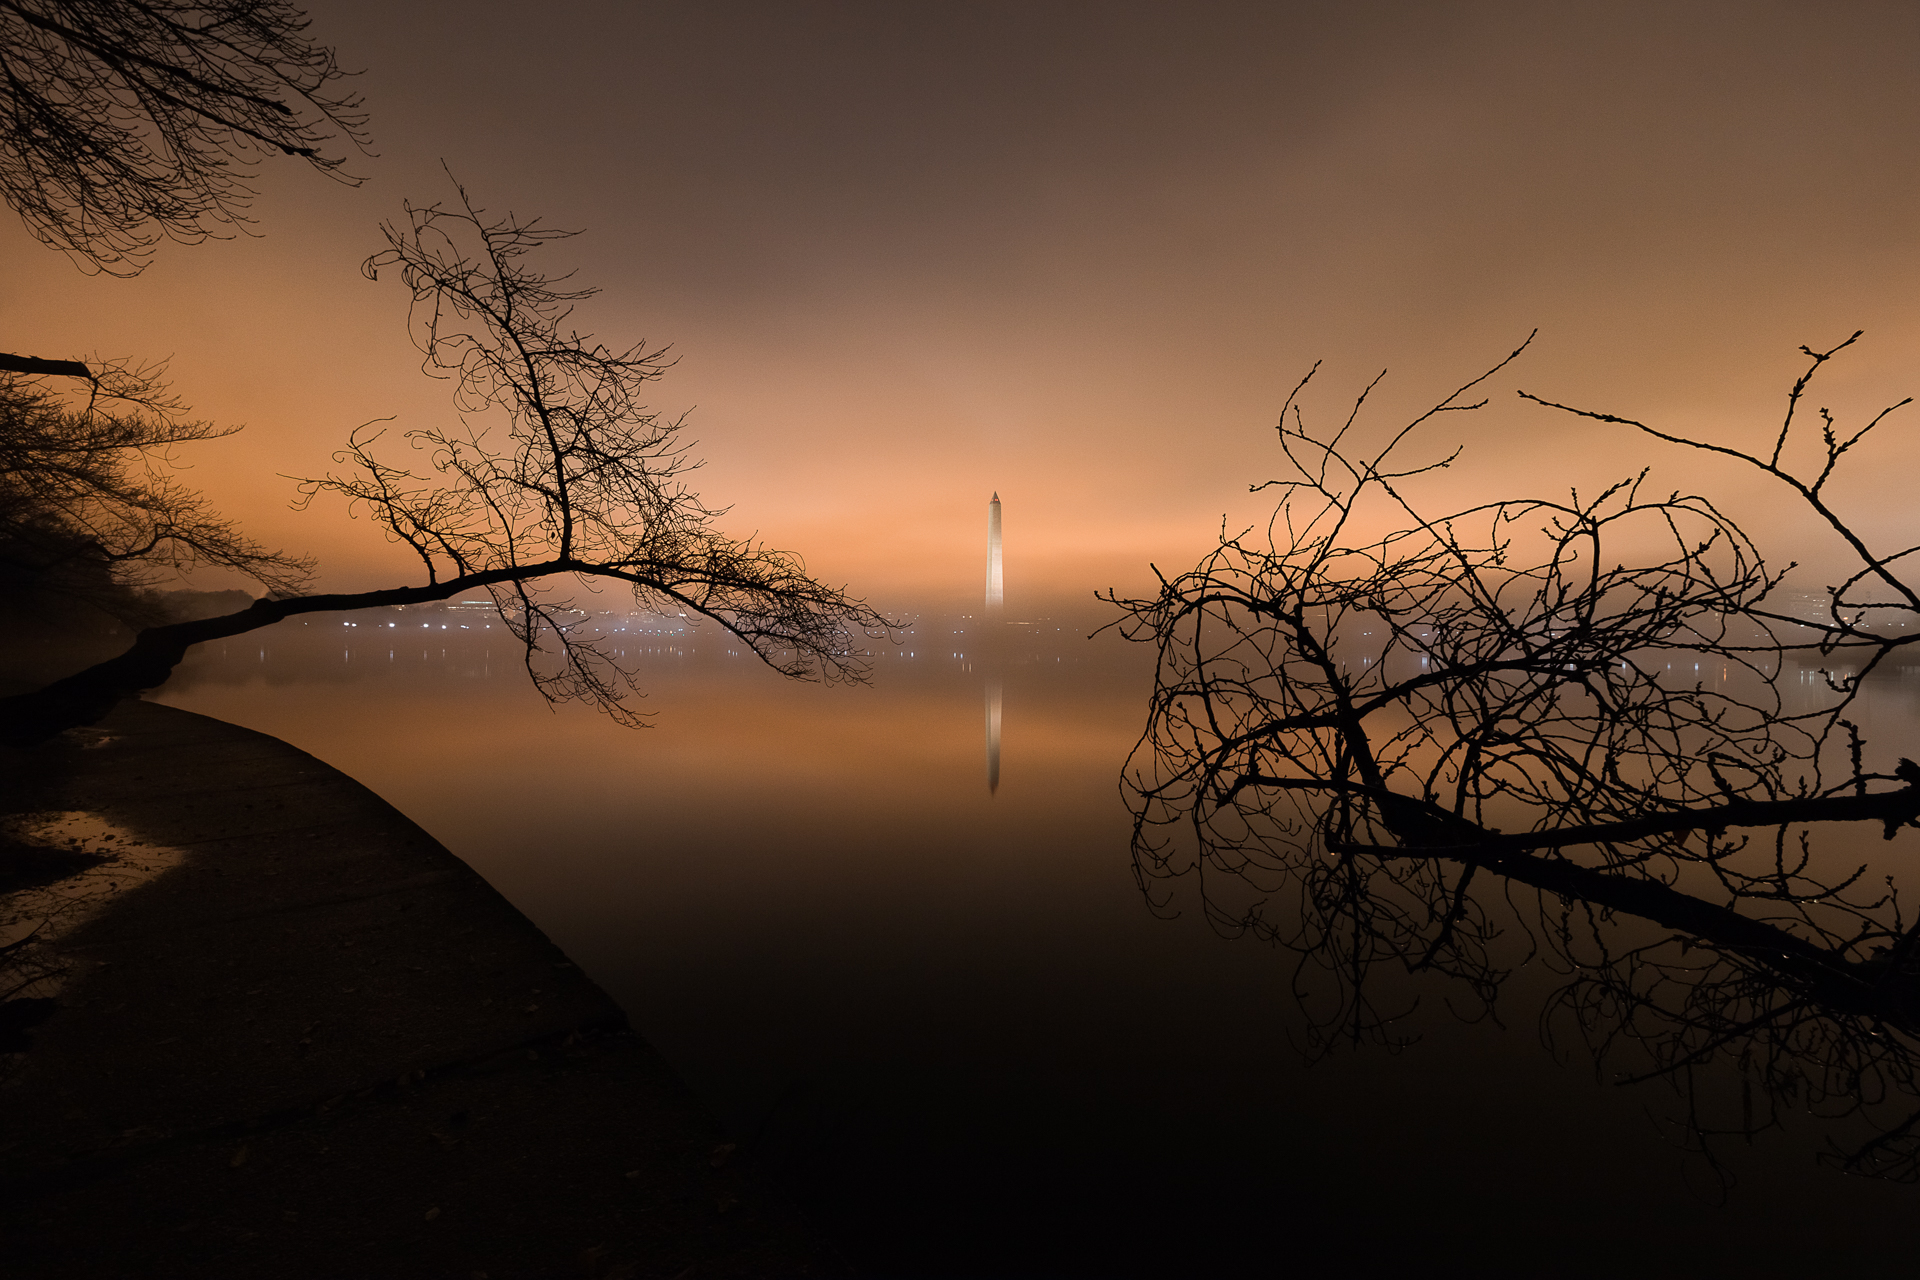 The Dark and Eerie – A foggy night on the Tidal Basin{&nbsp;}(Image: Zack Lewkowicz)<p></p>